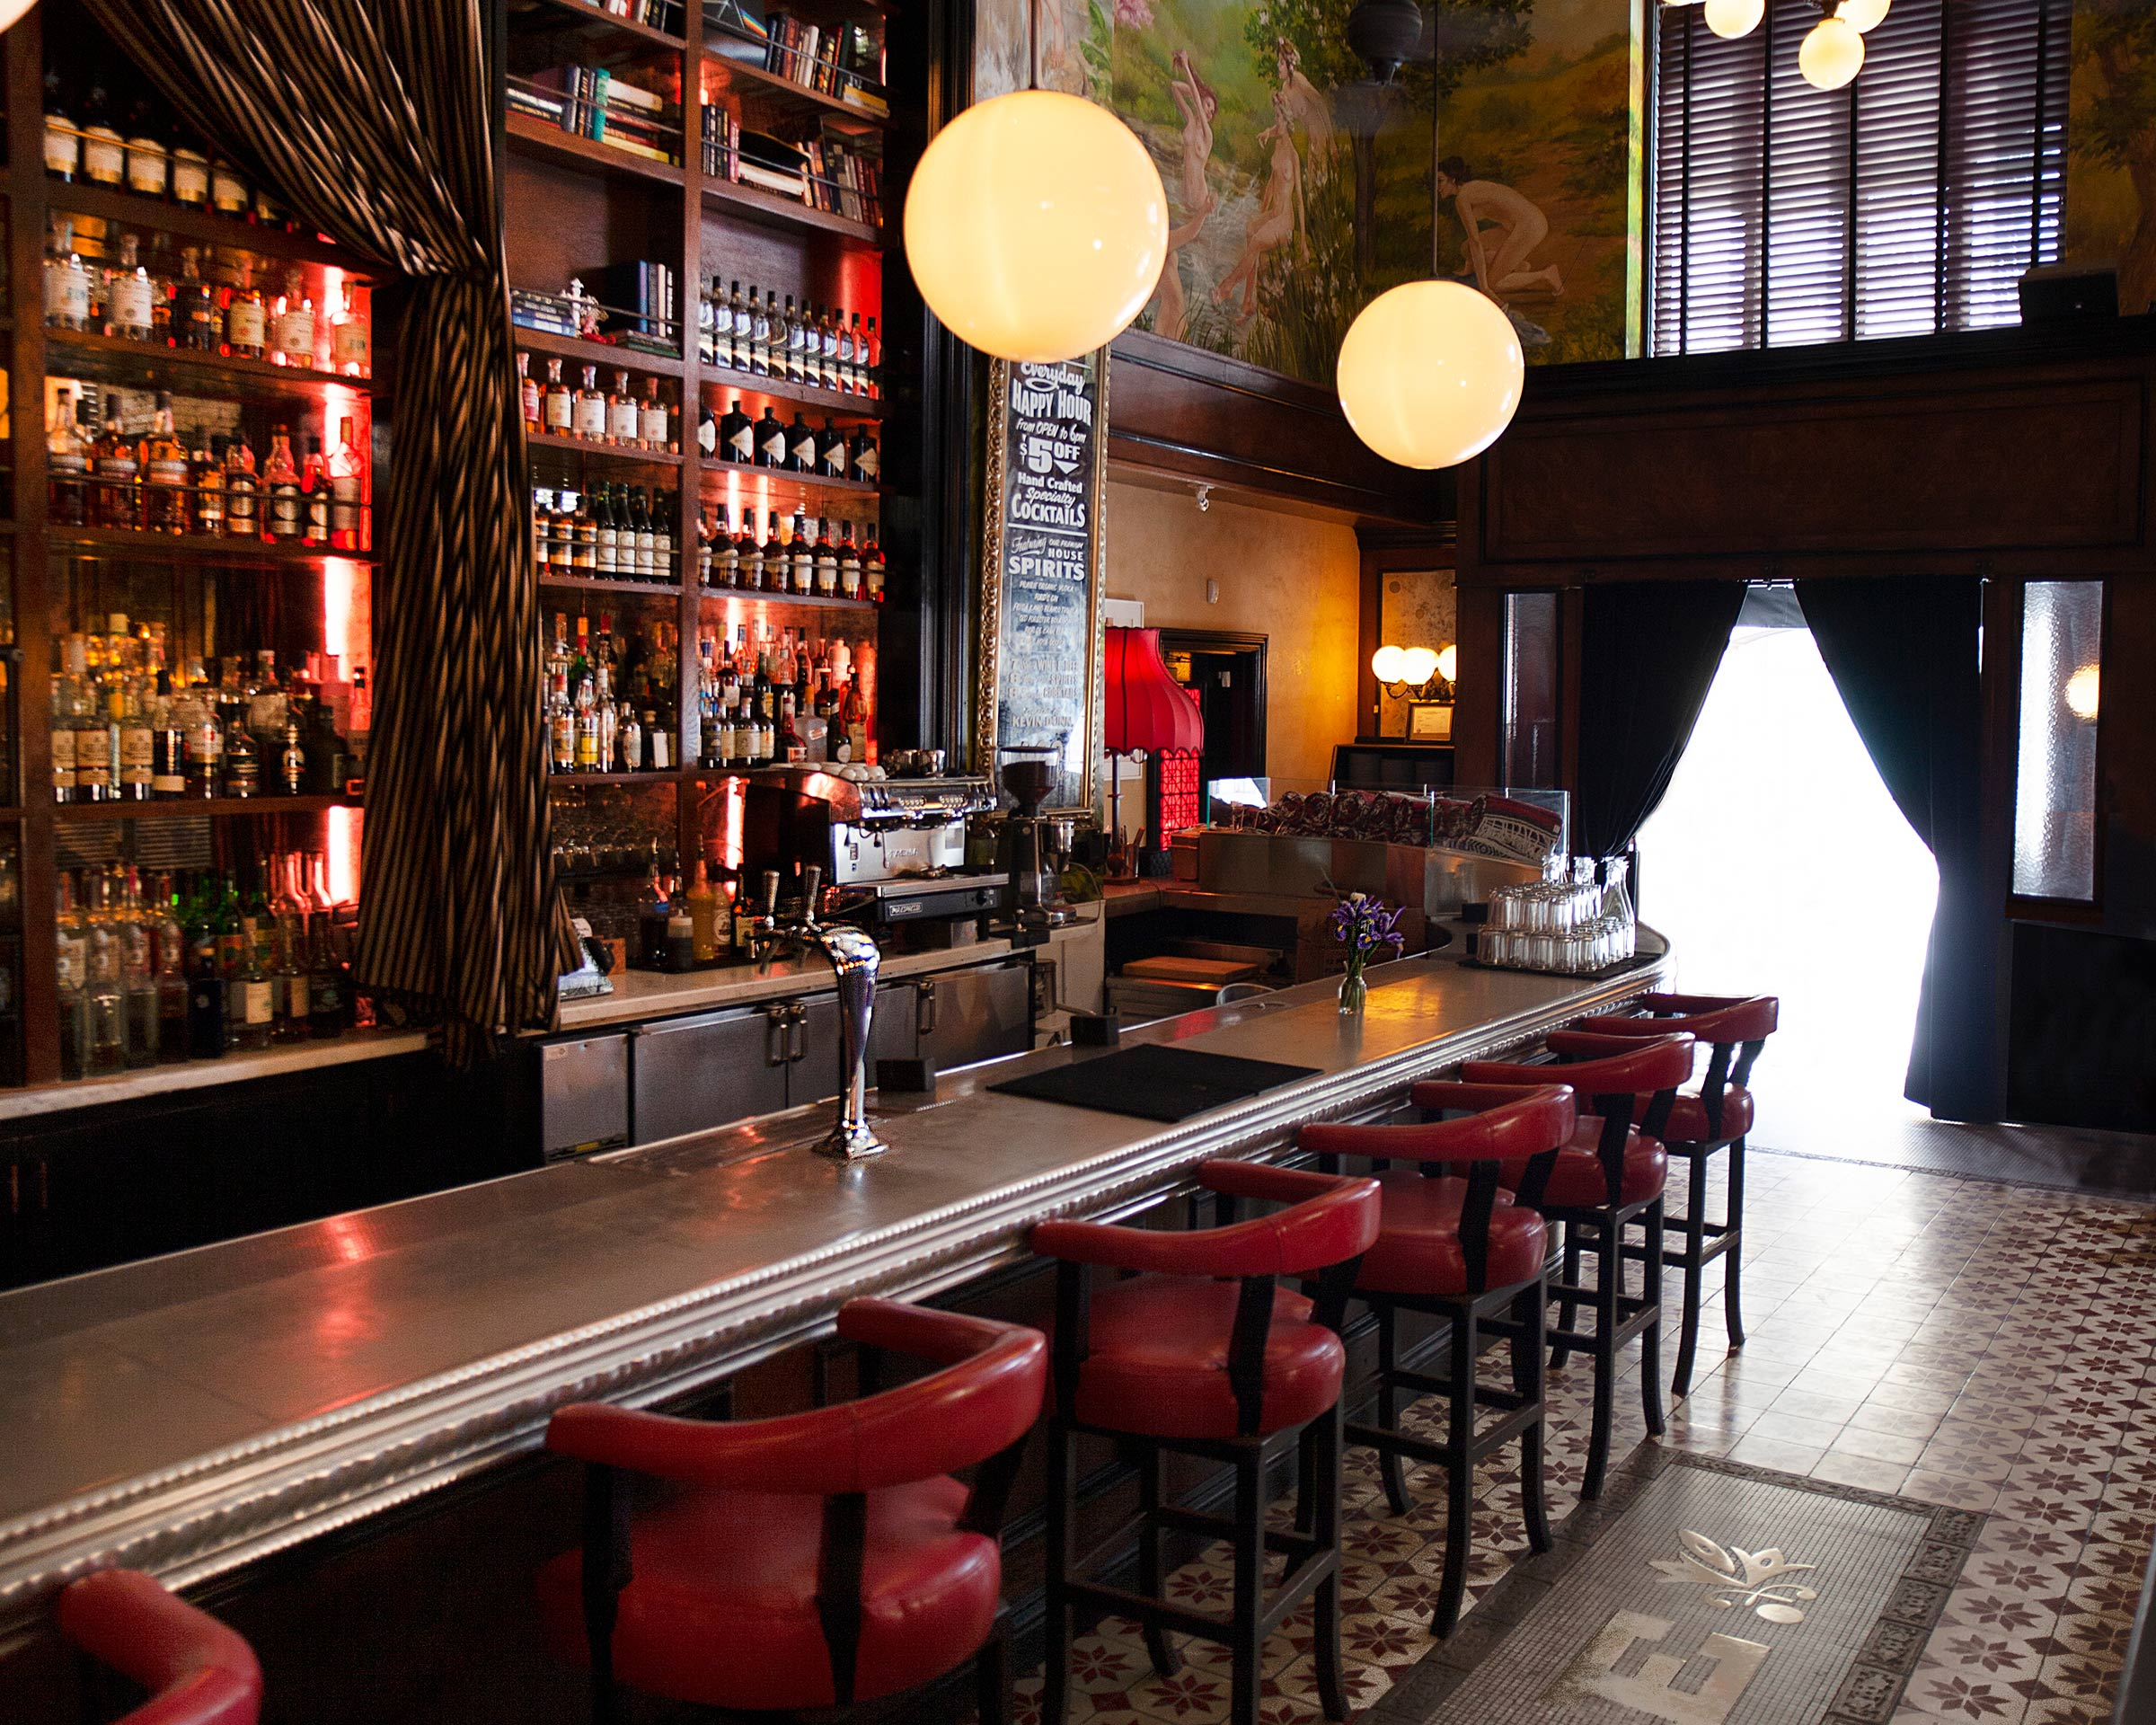 Library Theater Vegetarian Small plates Clean Signature Cocktails Refined Farmers Market Fresh Shared plates High level Theatrical Energy Artful Parisian European Business lunch Art Deco Architecture Happy hour Date night Girls night out Weekend brunch Bachelorette party Birthday Rehearsal dinner Spirits Brunch Ceremony Graduation parties Seasonal Exciting Lively Class Sass class fun en masse